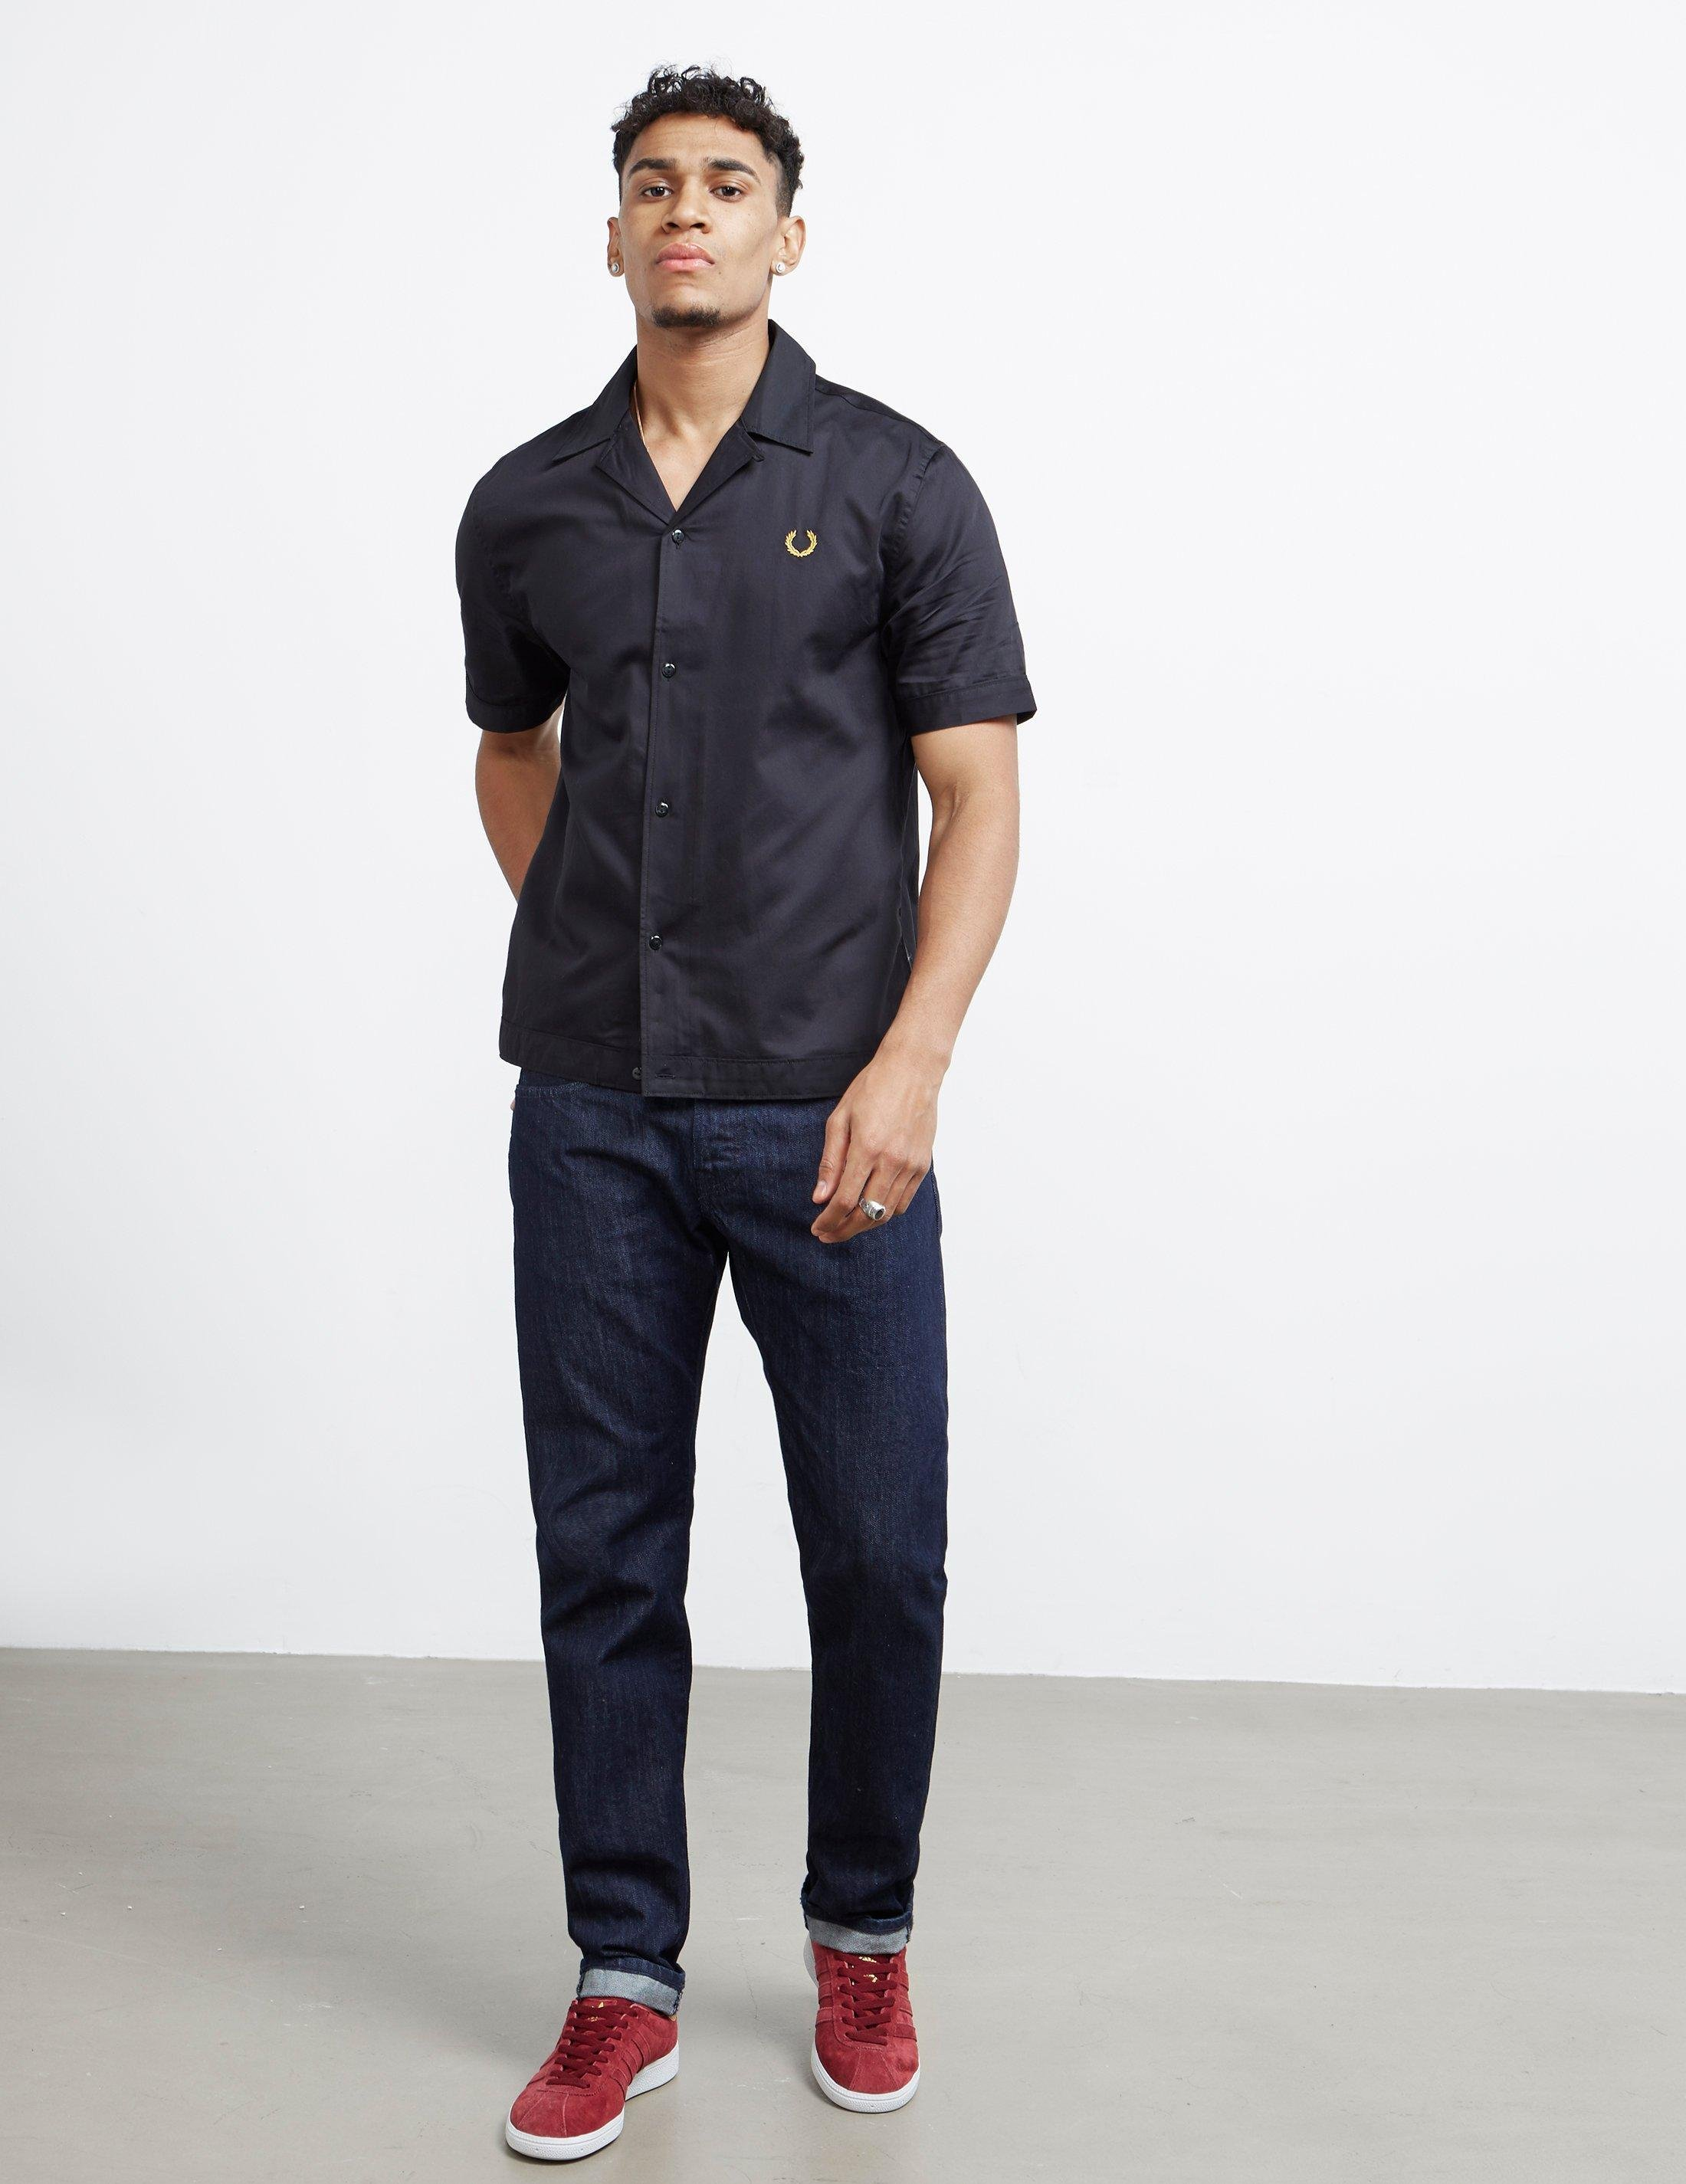 7ef89eebc Fred Perry X Miles Kane Short Sleeve Bowling Shirt Black in Black for Men -  Lyst